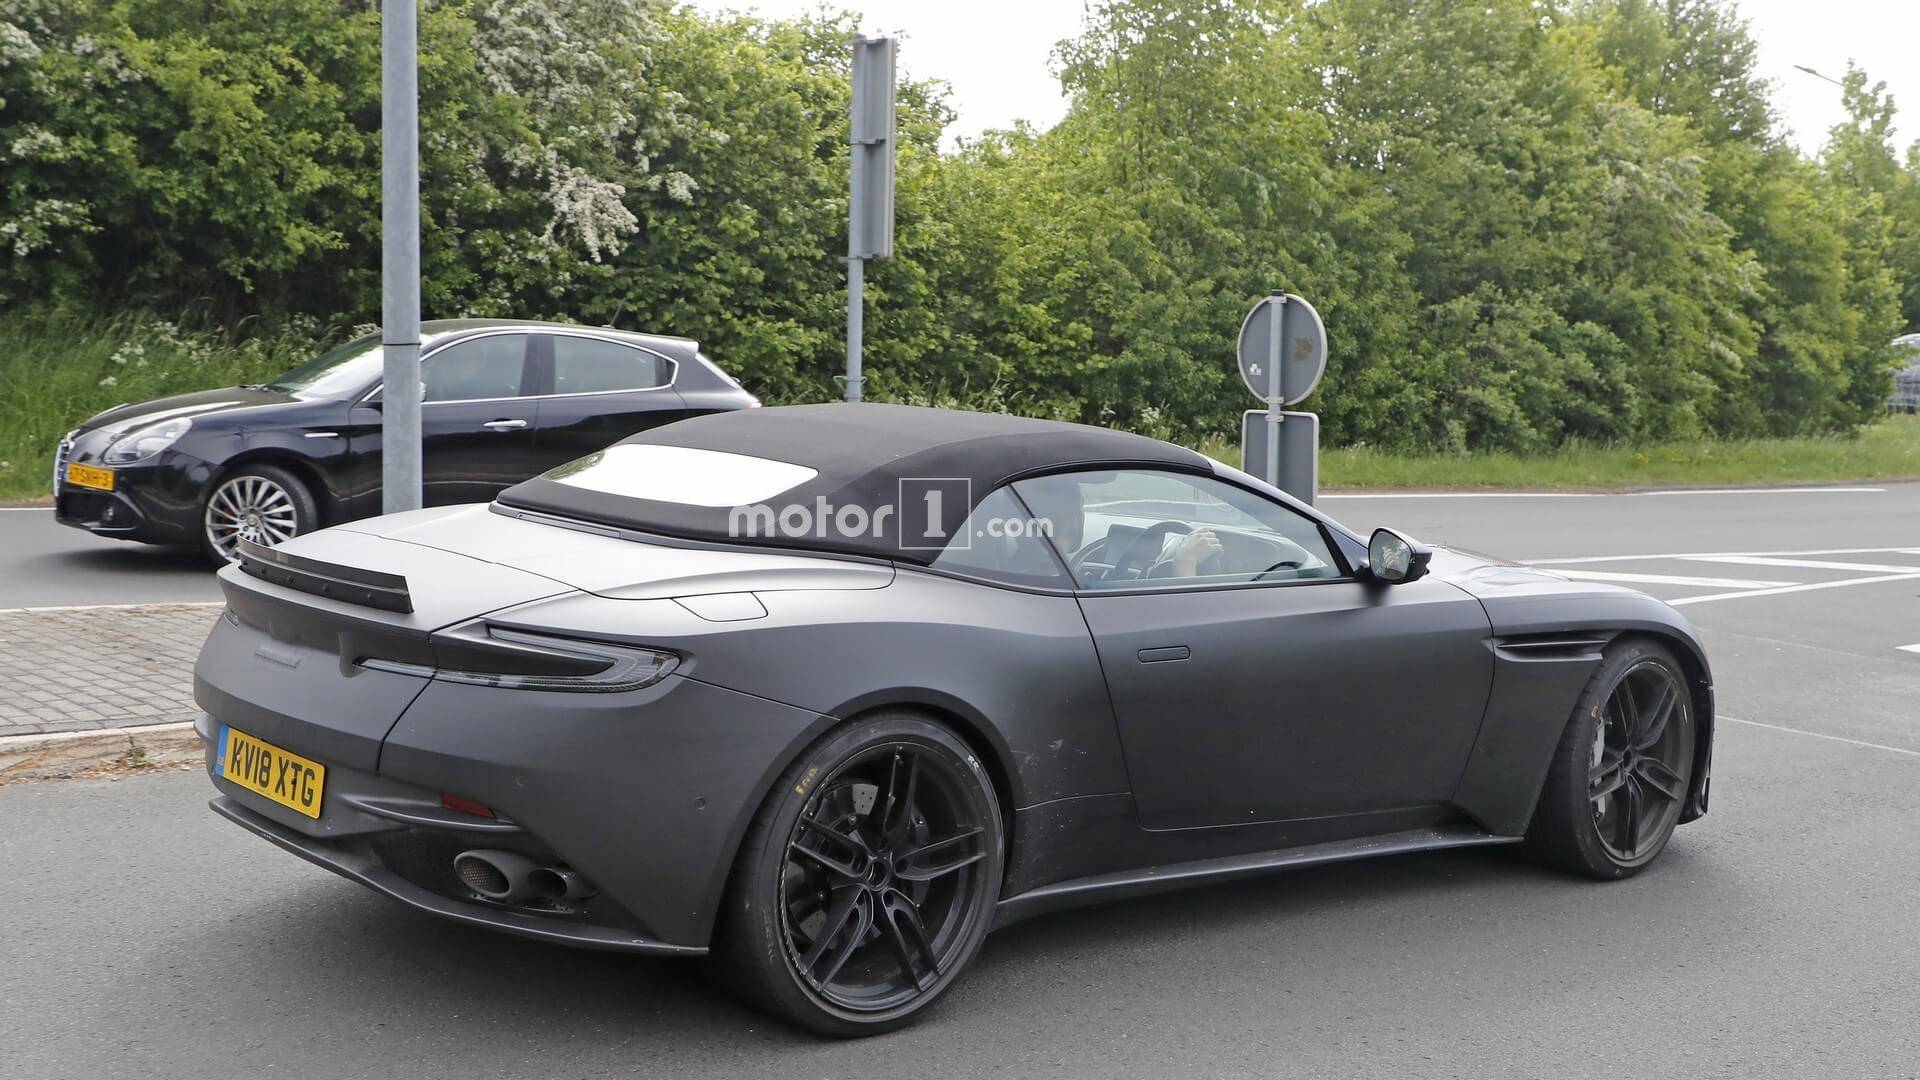 Aston Martin DBS Superleggera Volante Spied [UPDATE] 1920x1080